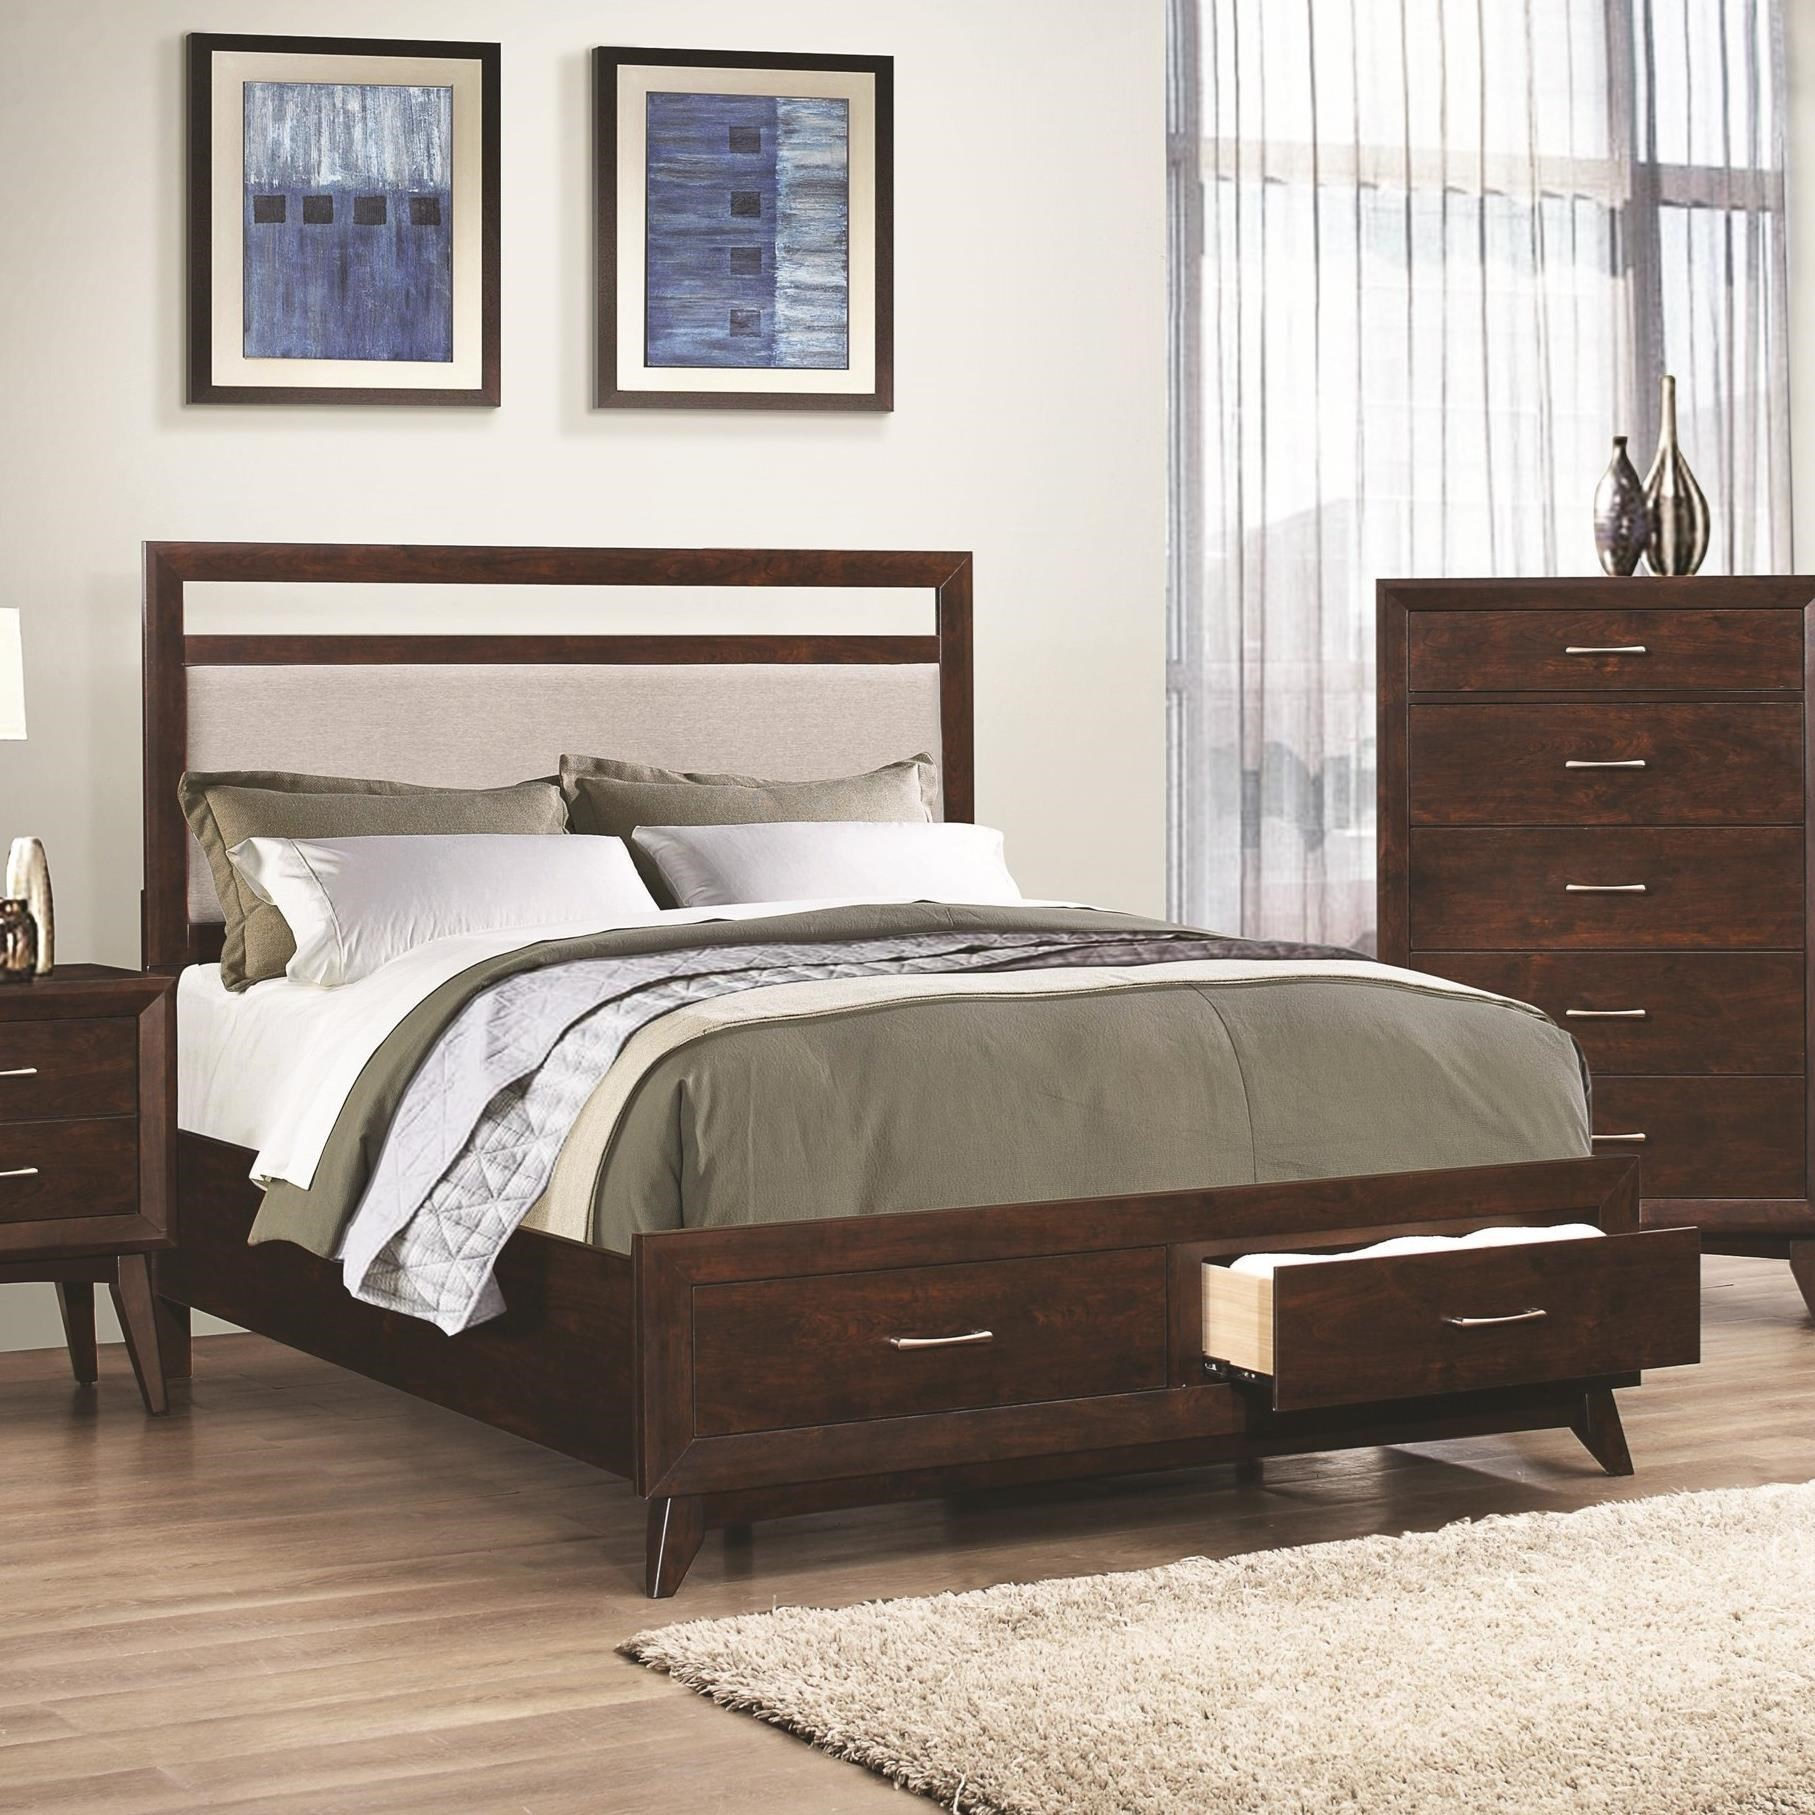 4 pc queen set, carrington (bed, dresser, nightstand, mirror)